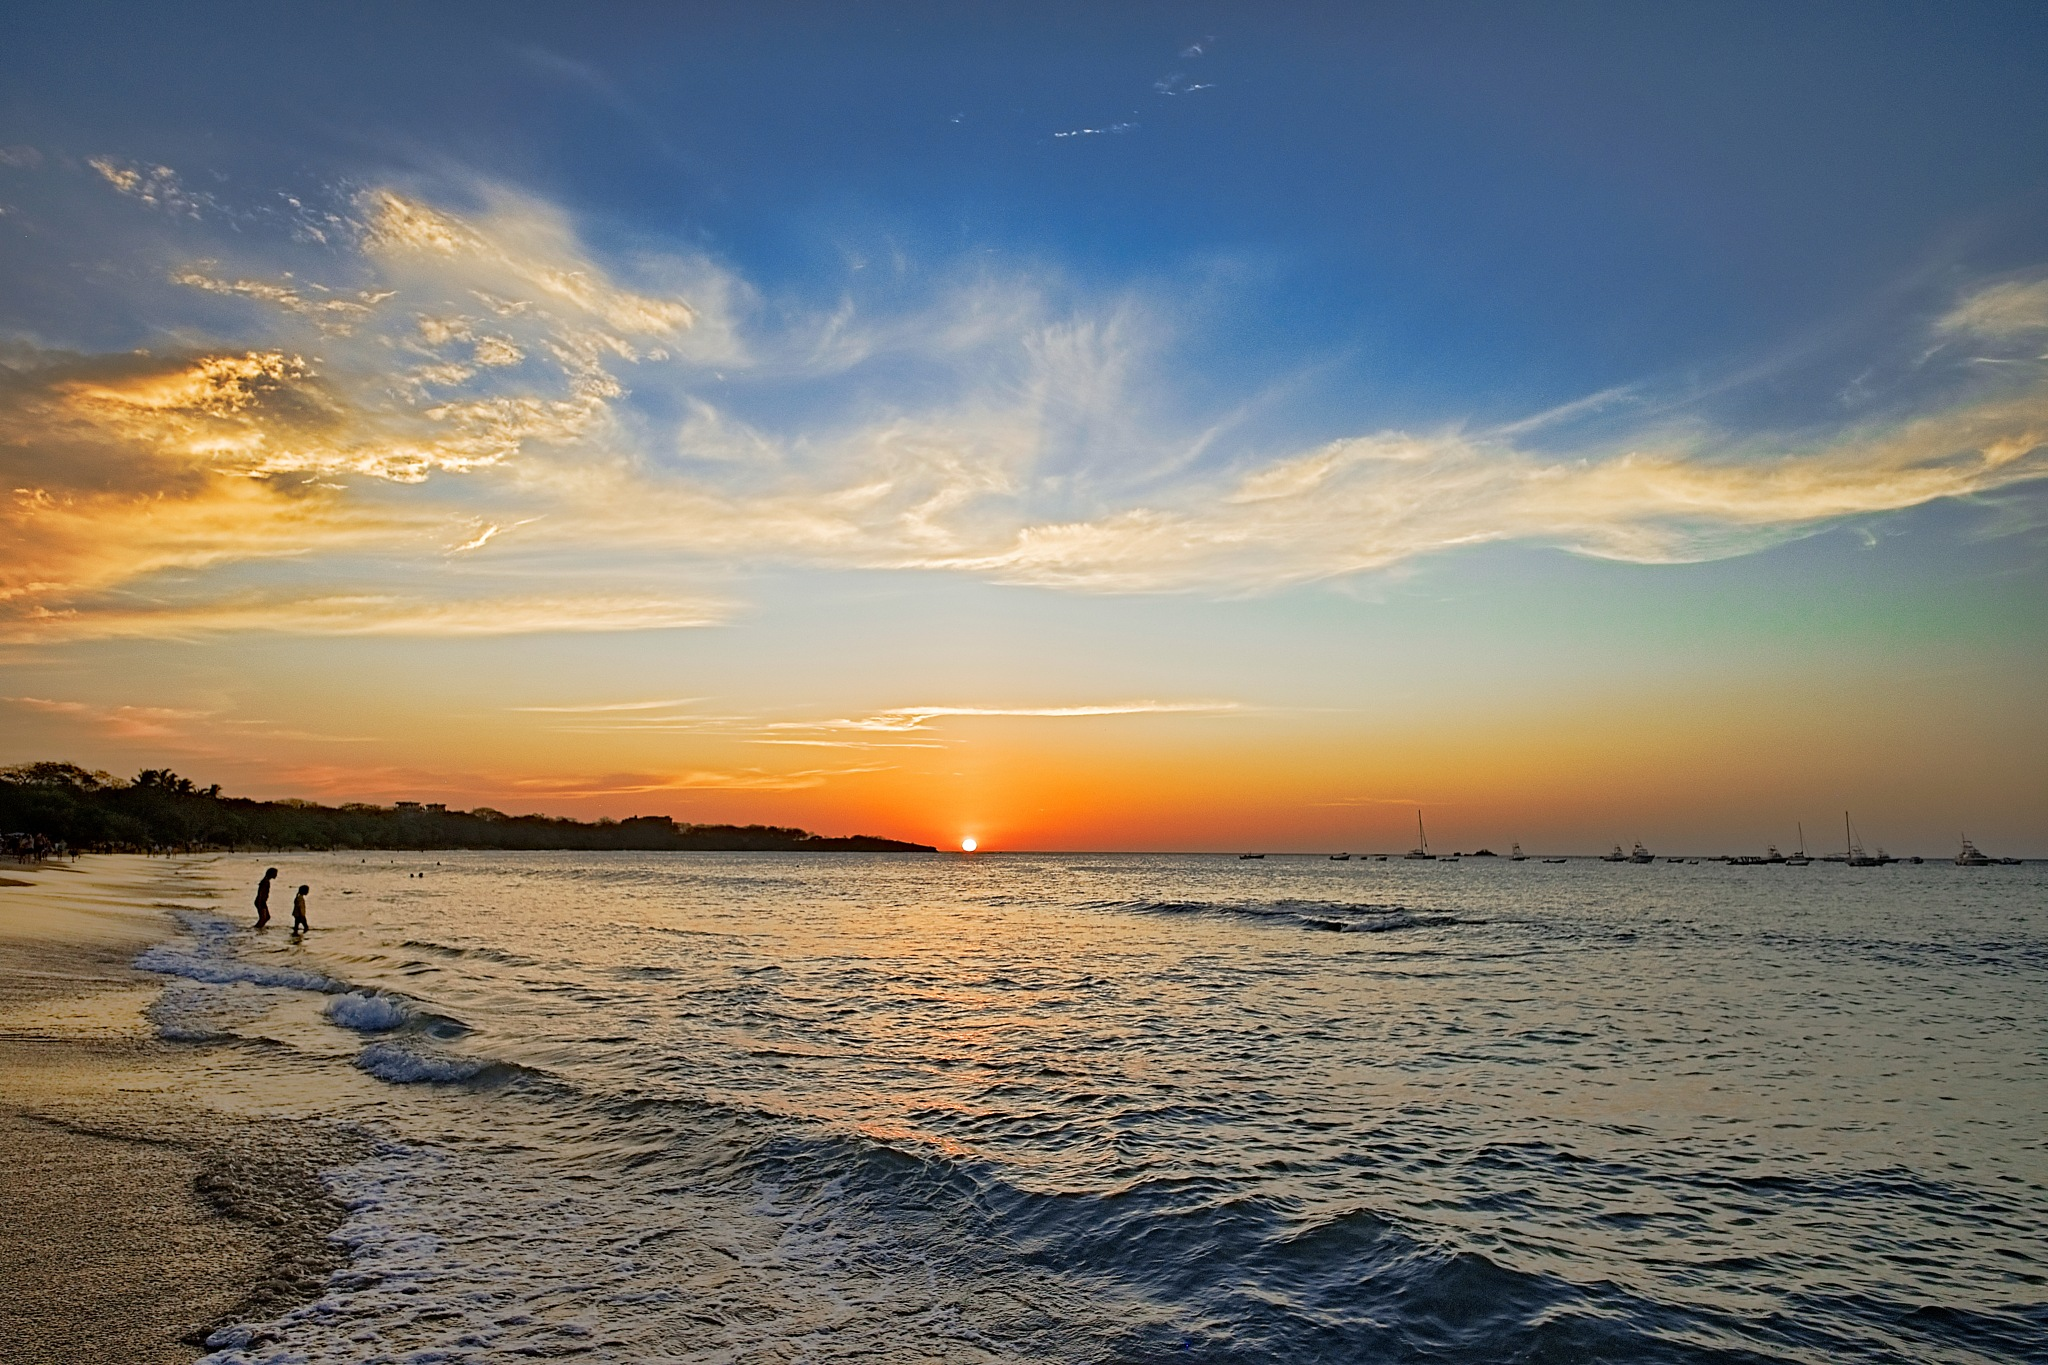 Sunset no 3 Yesterday by Smilin' Dog